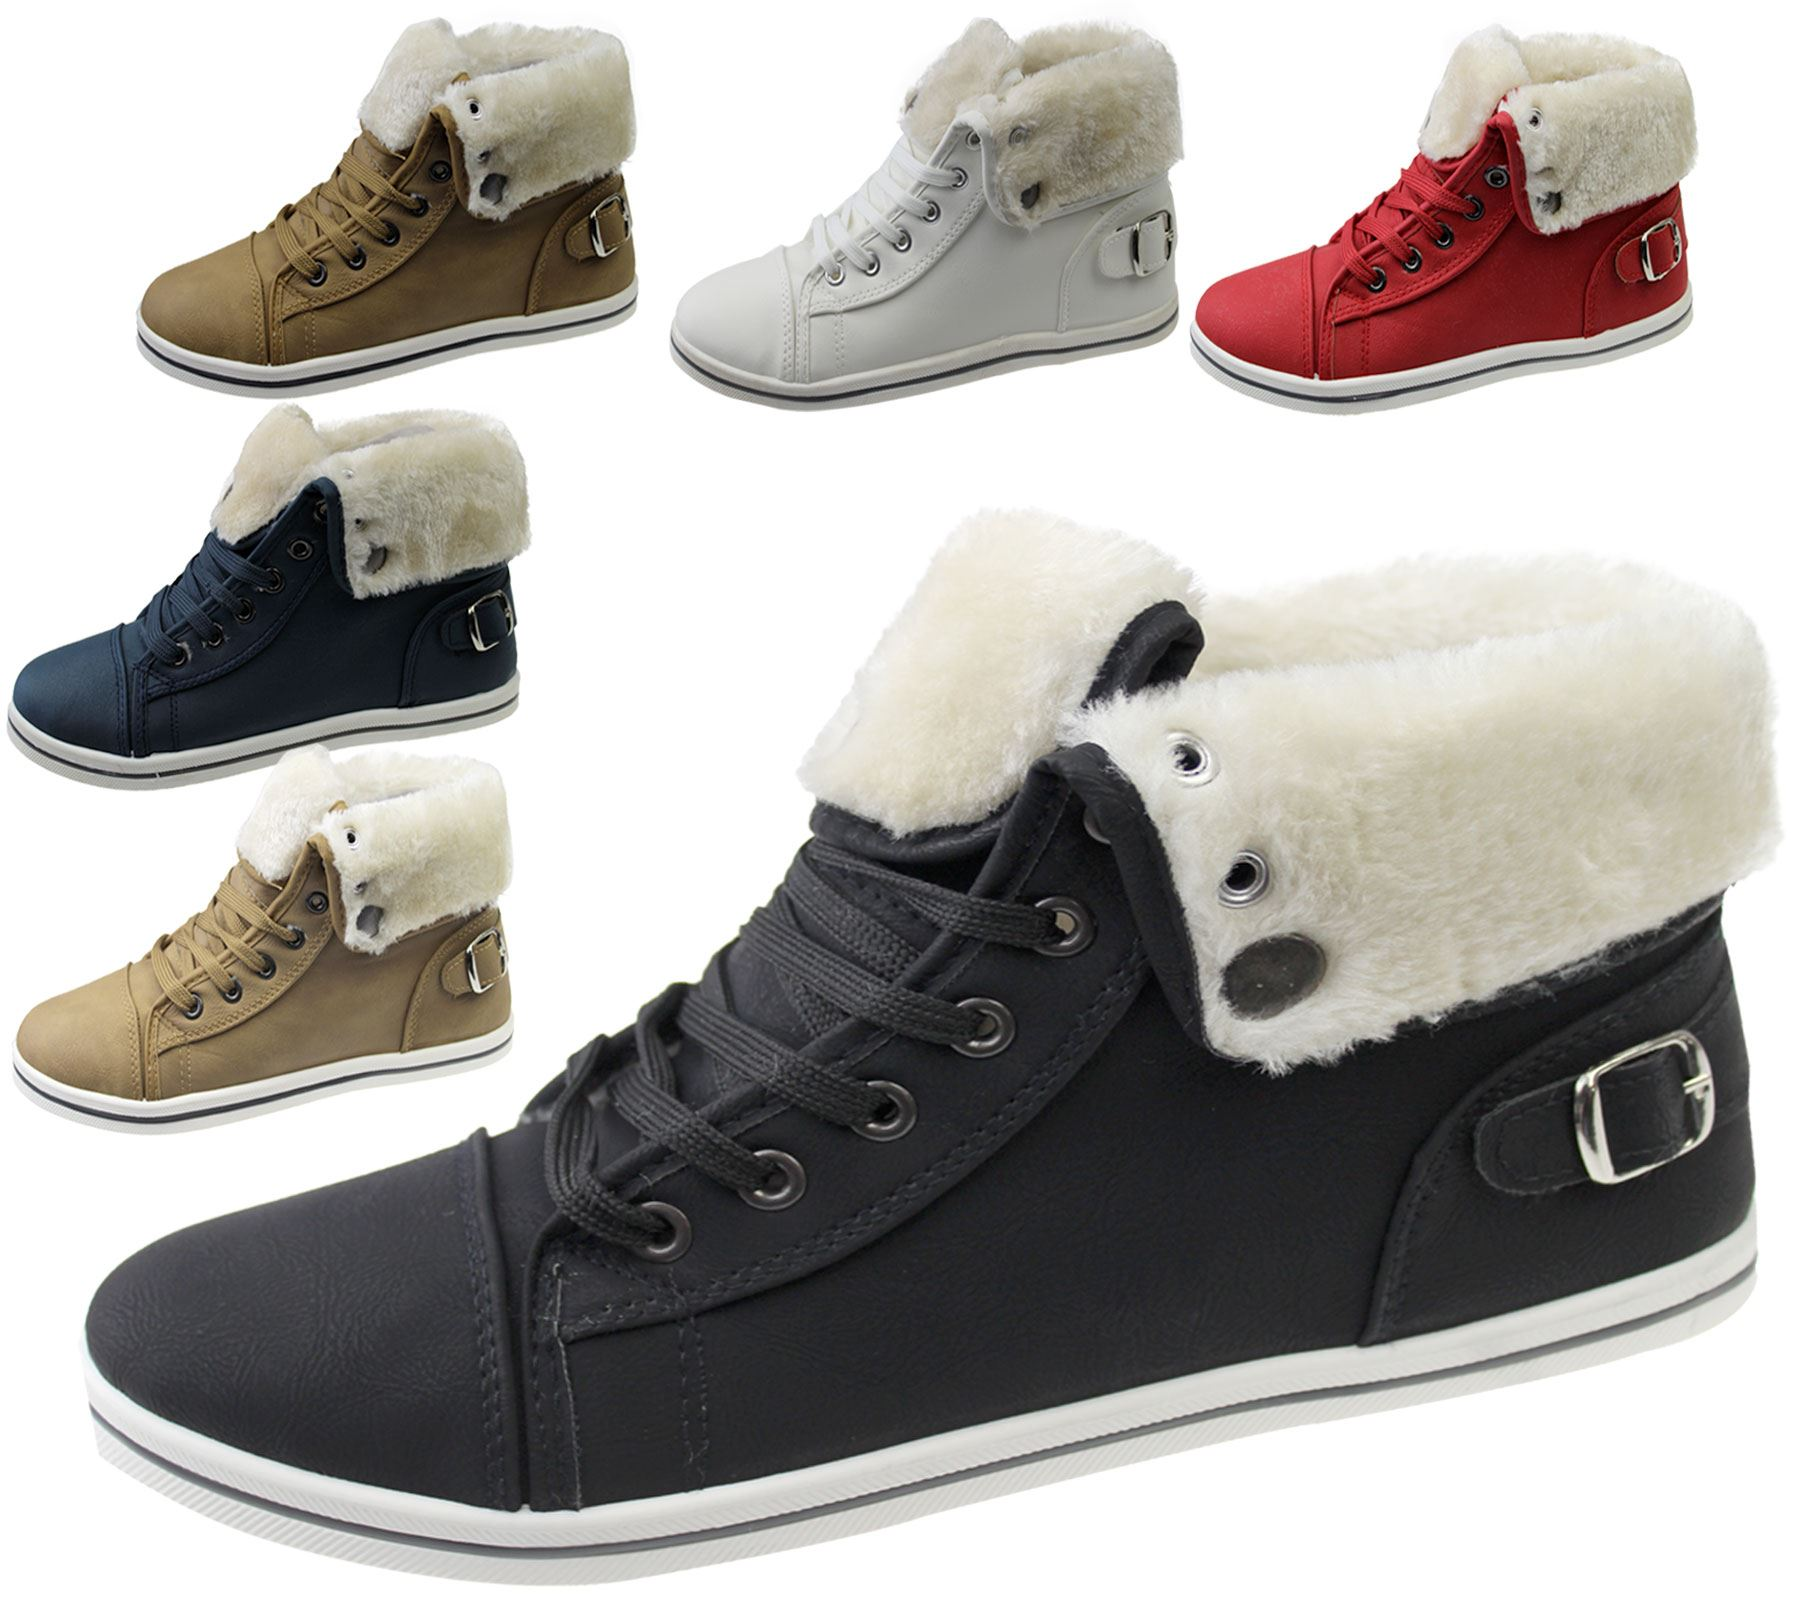 Girls-Boots-Womens-Warm-Lined-High-Top-Ankle-Trainer-Ladies-Winter-Shoes-Size miniatura 4